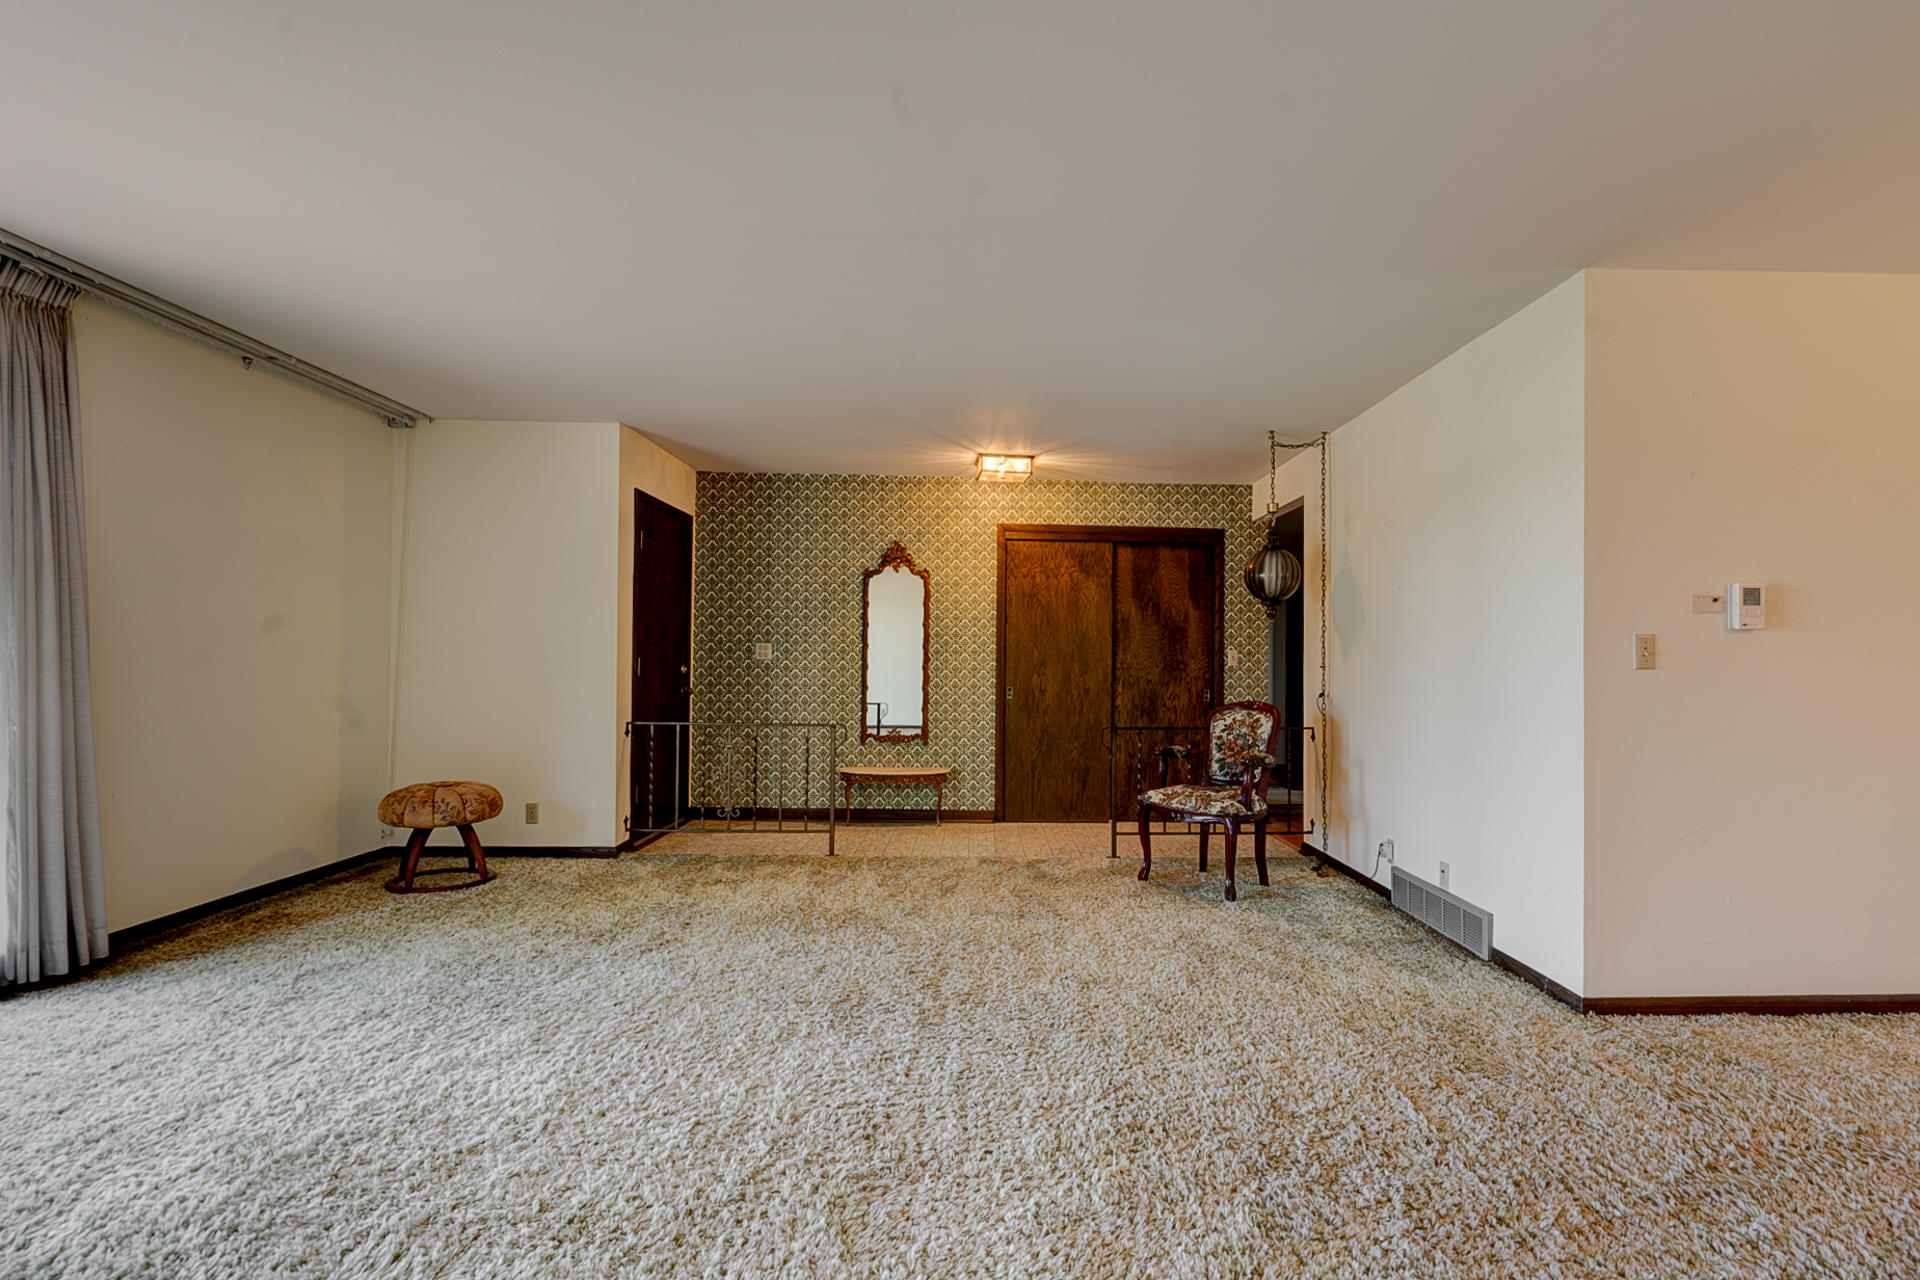 11246 Farmdale Rd, Mequon, Wisconsin 53097, 4 Bedrooms Bedrooms, 9 Rooms Rooms,2 BathroomsBathrooms,Single-family,For Sale,Farmdale Rd,1712976